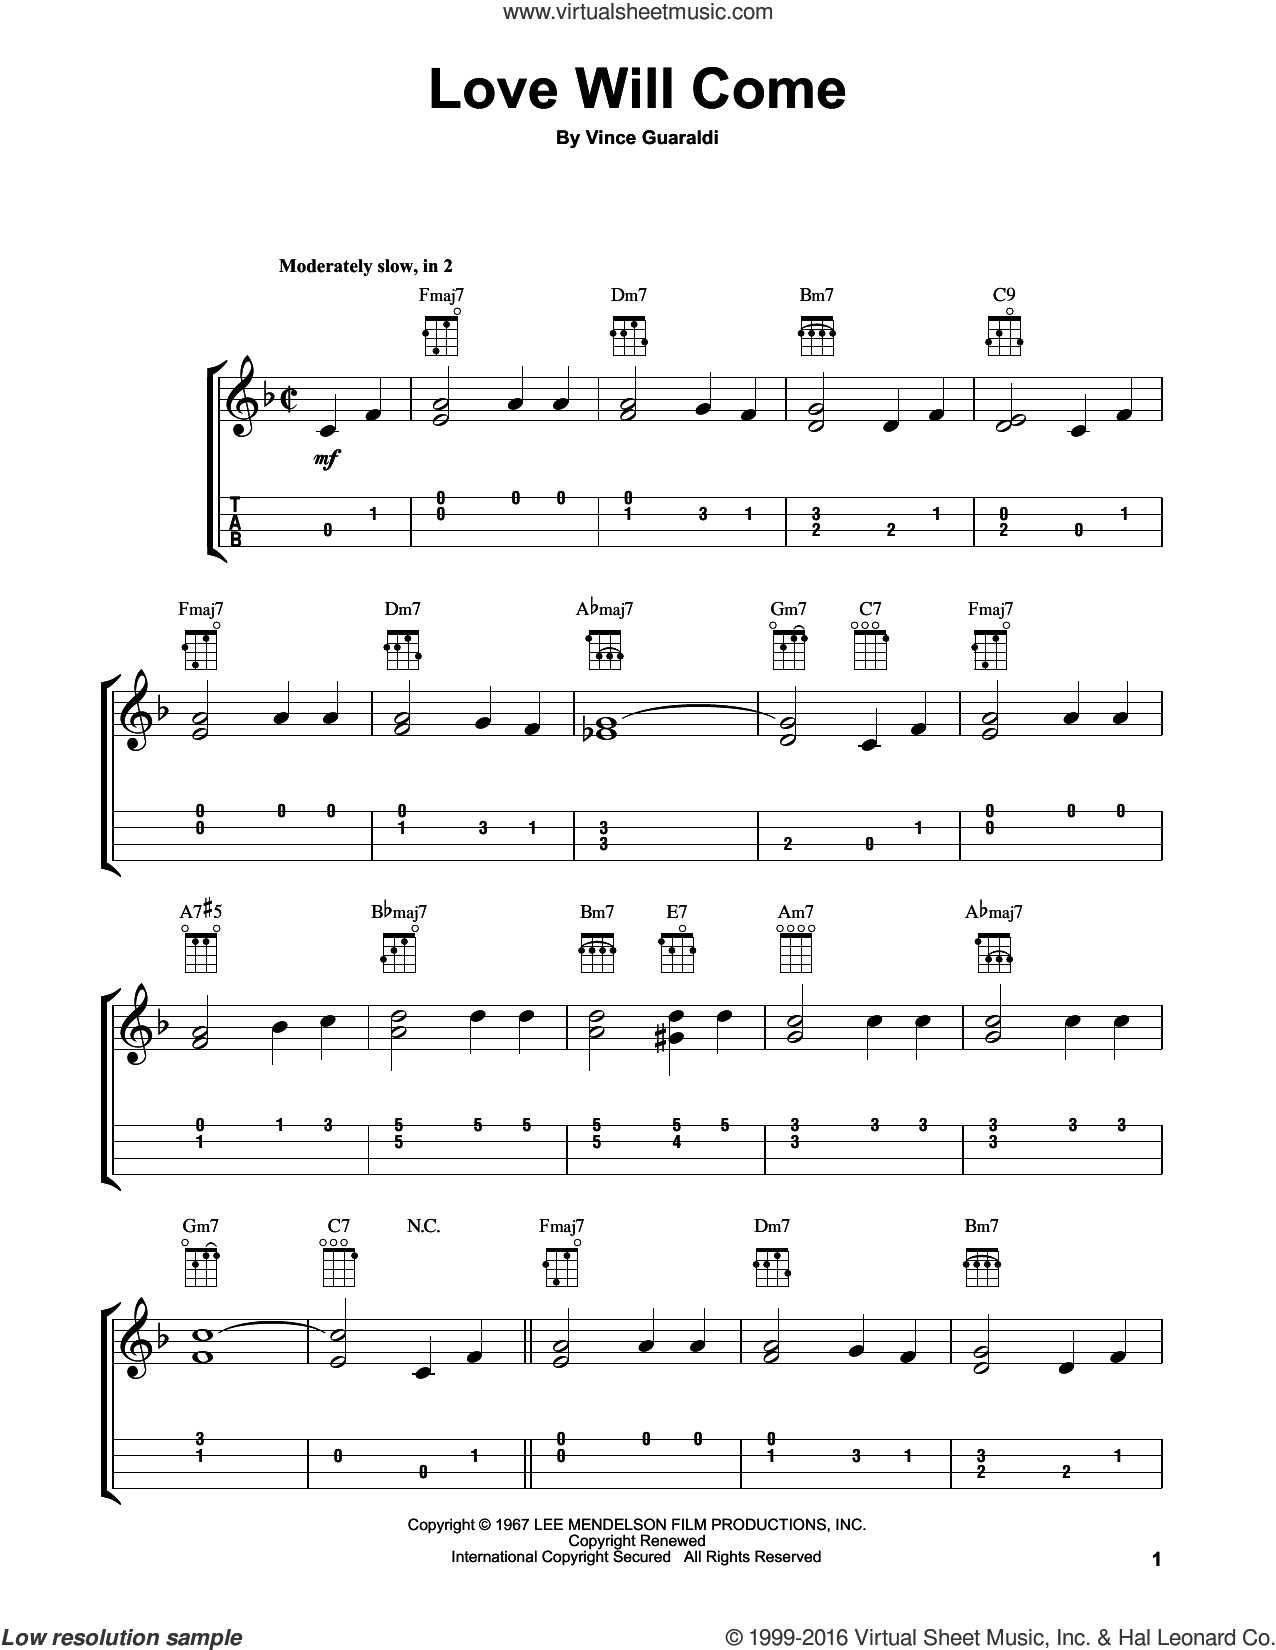 Love Will Come sheet music for ukulele by Vince Guaraldi, intermediate